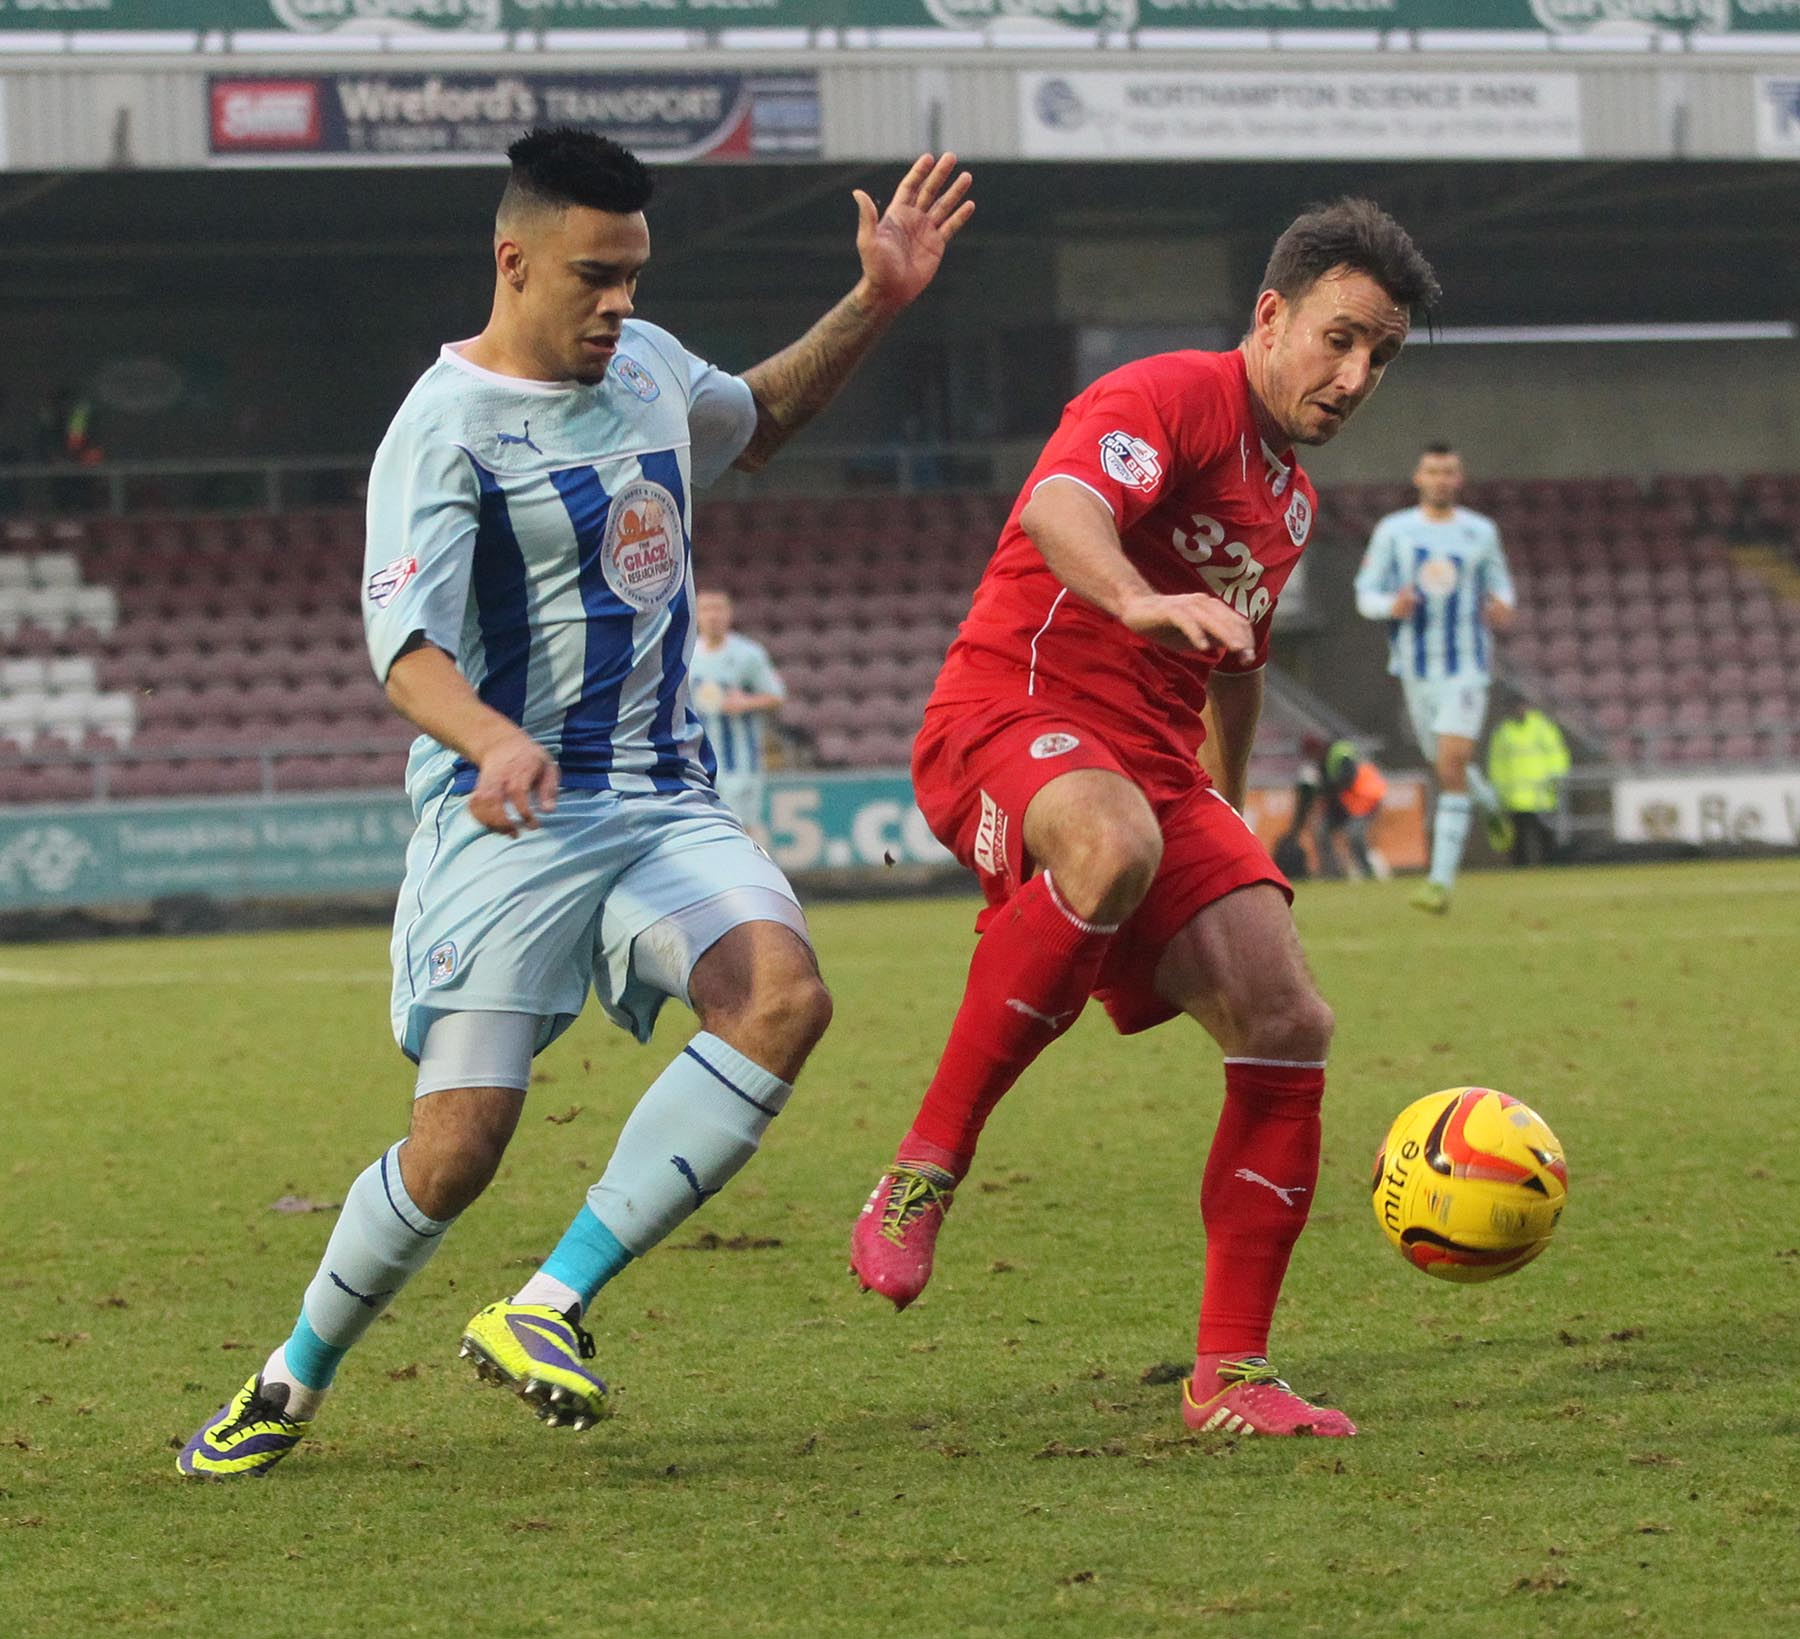 The man was detained during the Crawley Town versus Coventry City game in Northampton